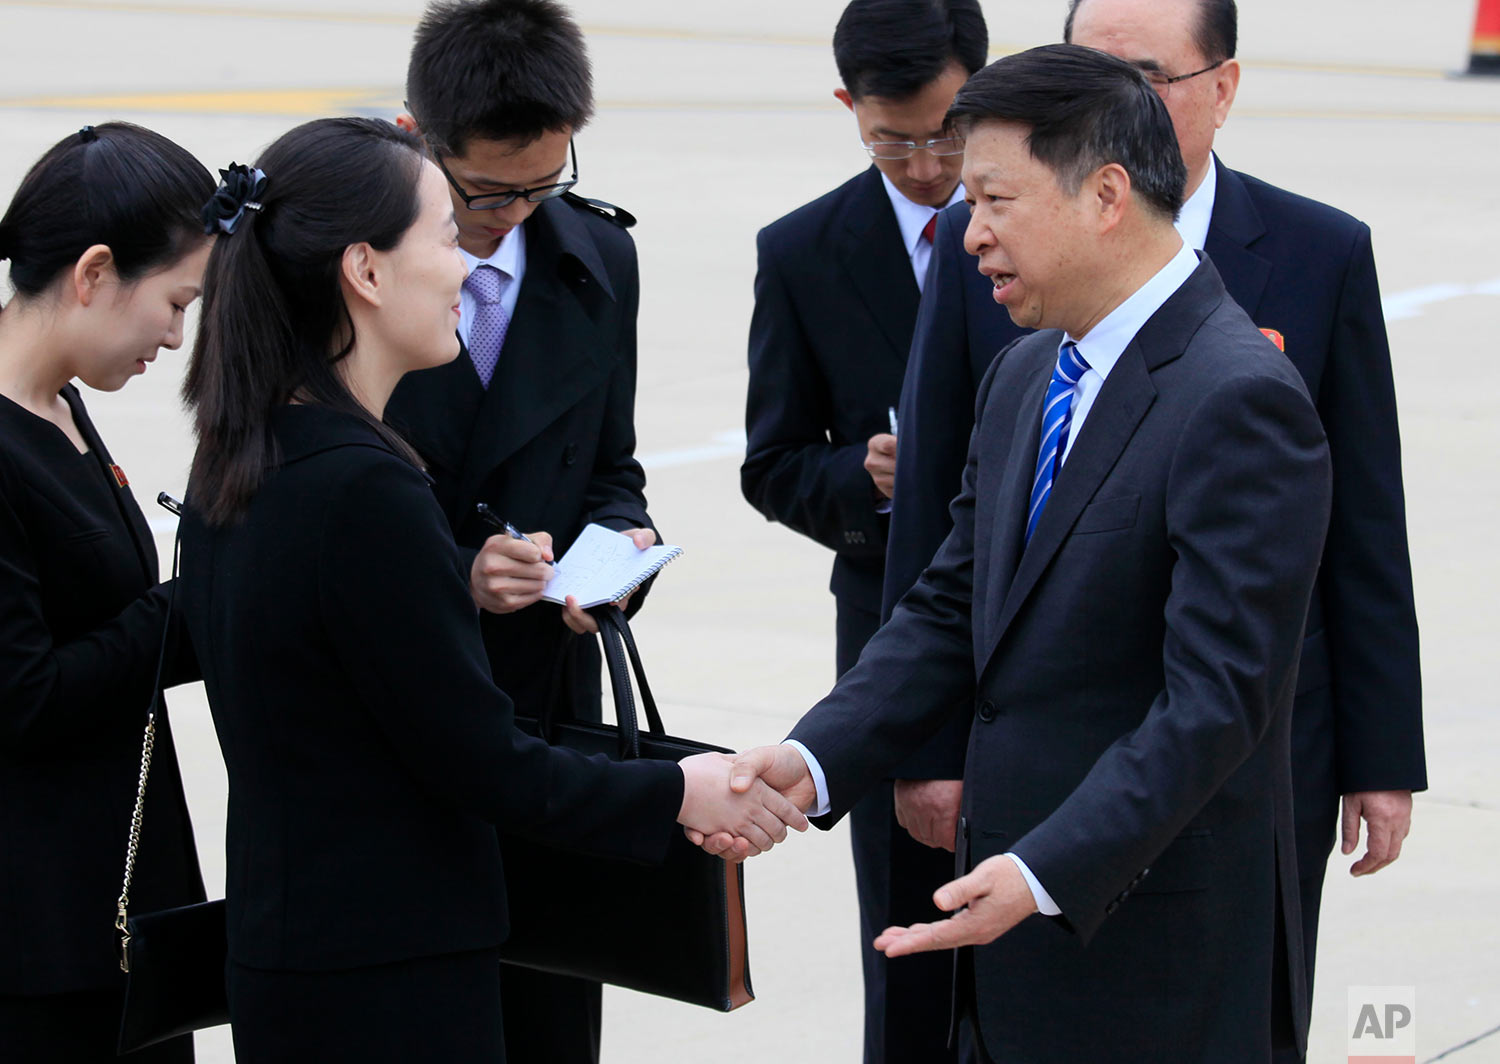 Song Tao, right, head of the Chinese Communist Party Central Committee's international department, shakes hands with Kim Yo Jong, the sister of North Korean leader Kim Jong Un, as a Chinese art troupe led by Song arrives at Pyongyang Airport in North Korea on April 13, 2018. (AP Photo/Jon Chol Jin)